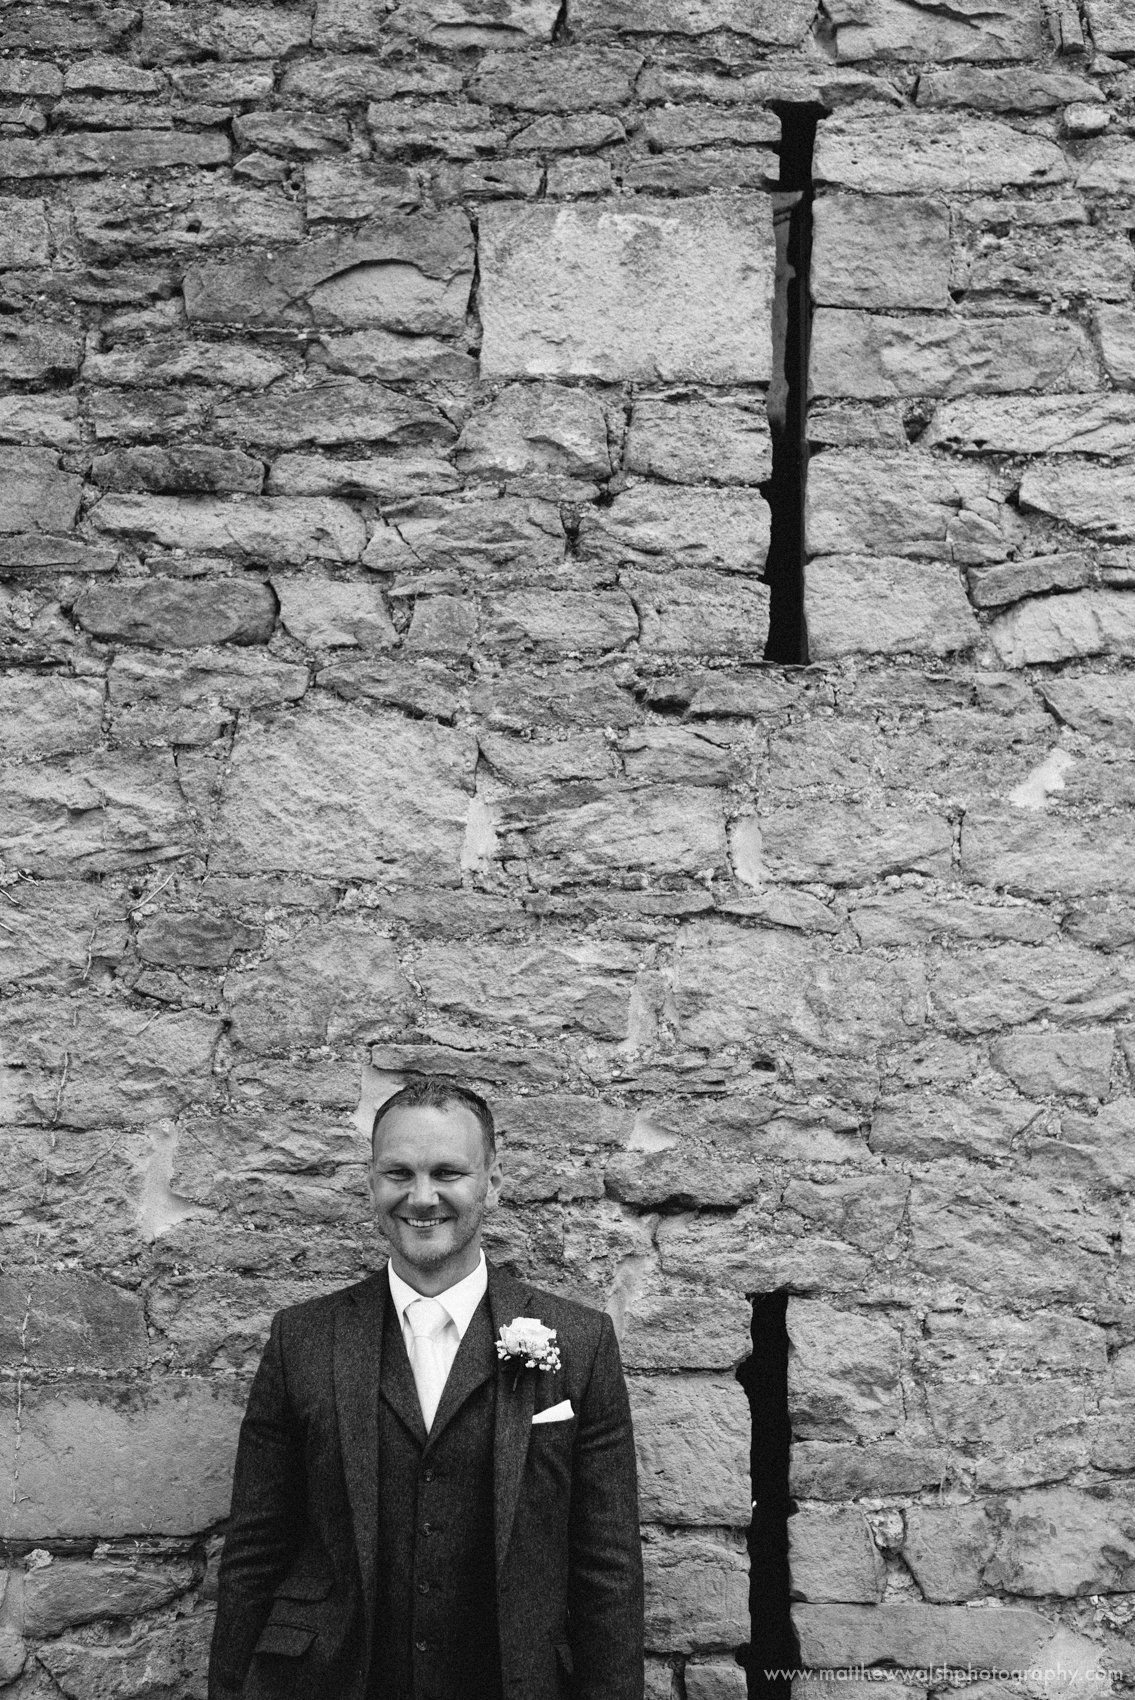 A favourite negative space portrait of the groom